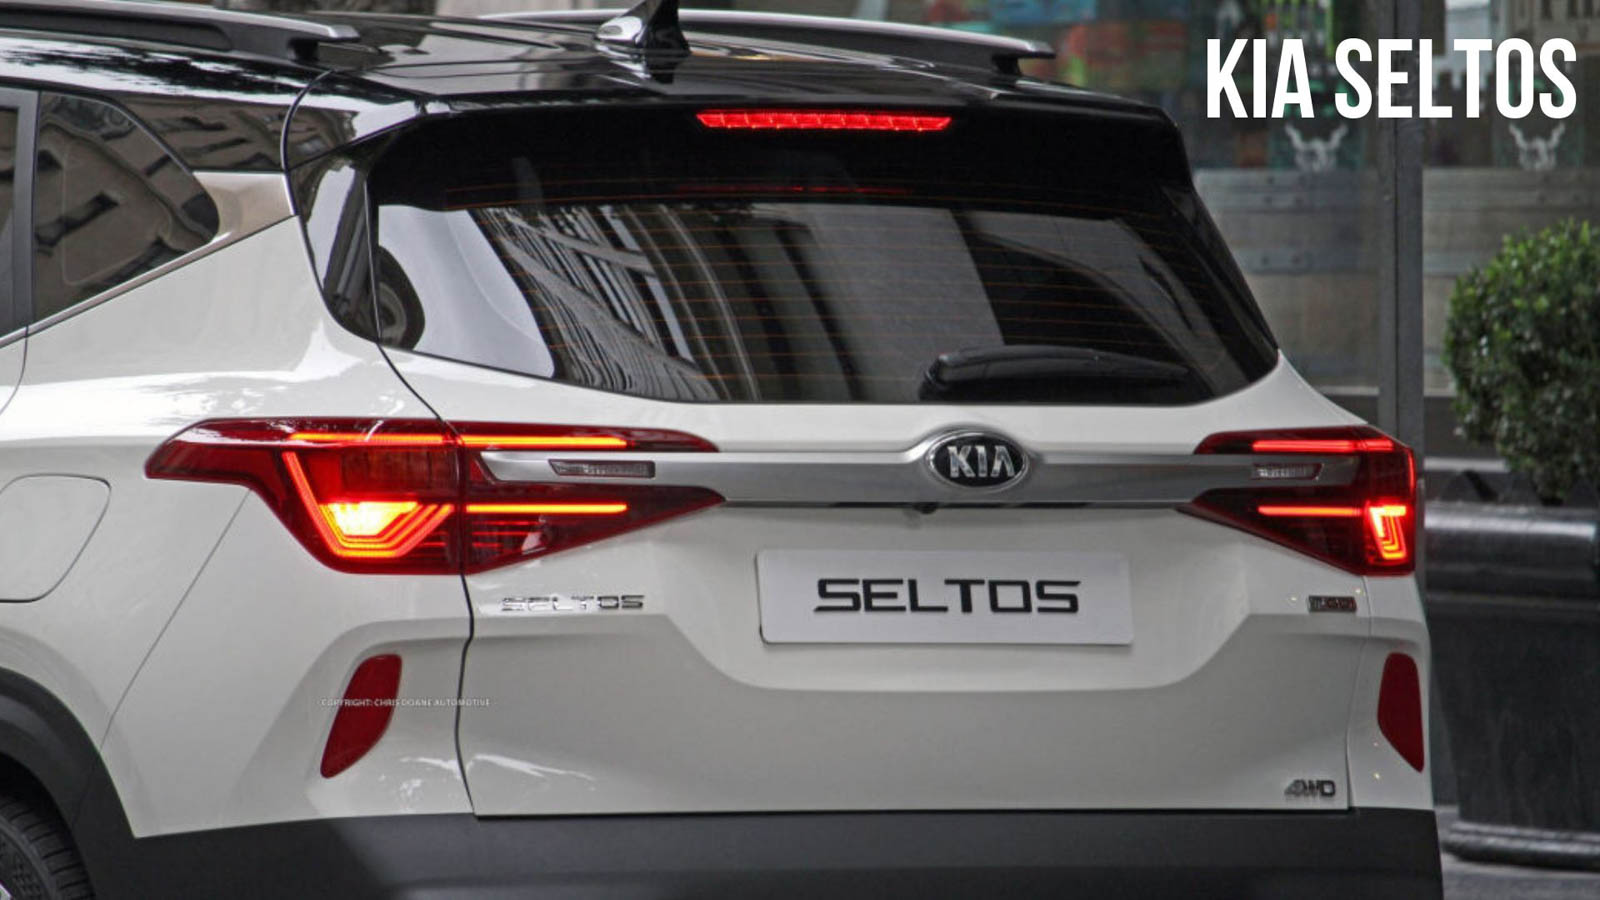 Kia Seltos Name Confirmed For SP2i Production Version